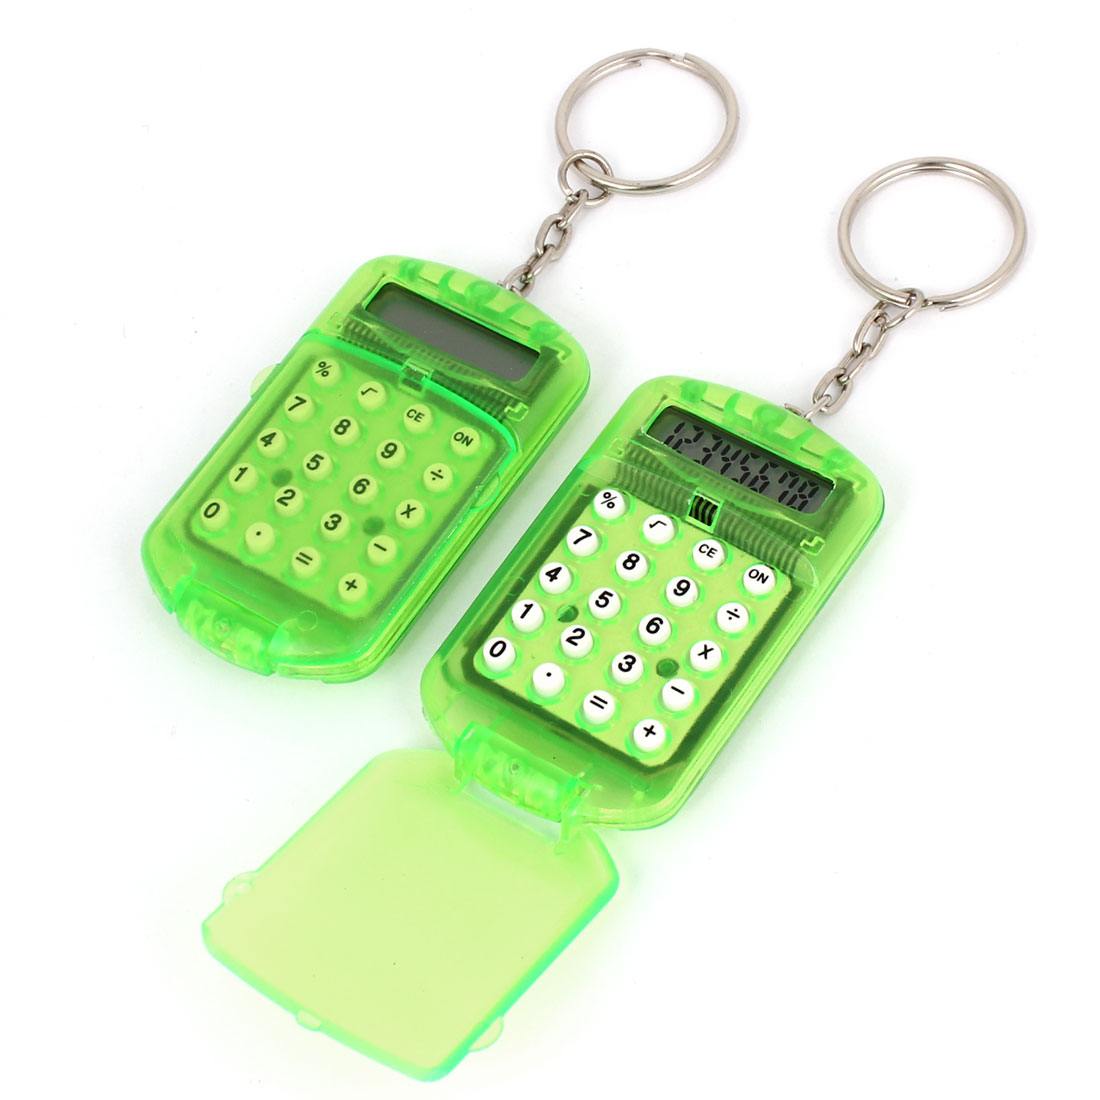 2Pcs Clear Green Plastic 8 Digits Electronic Calculator w Key Ring Chain